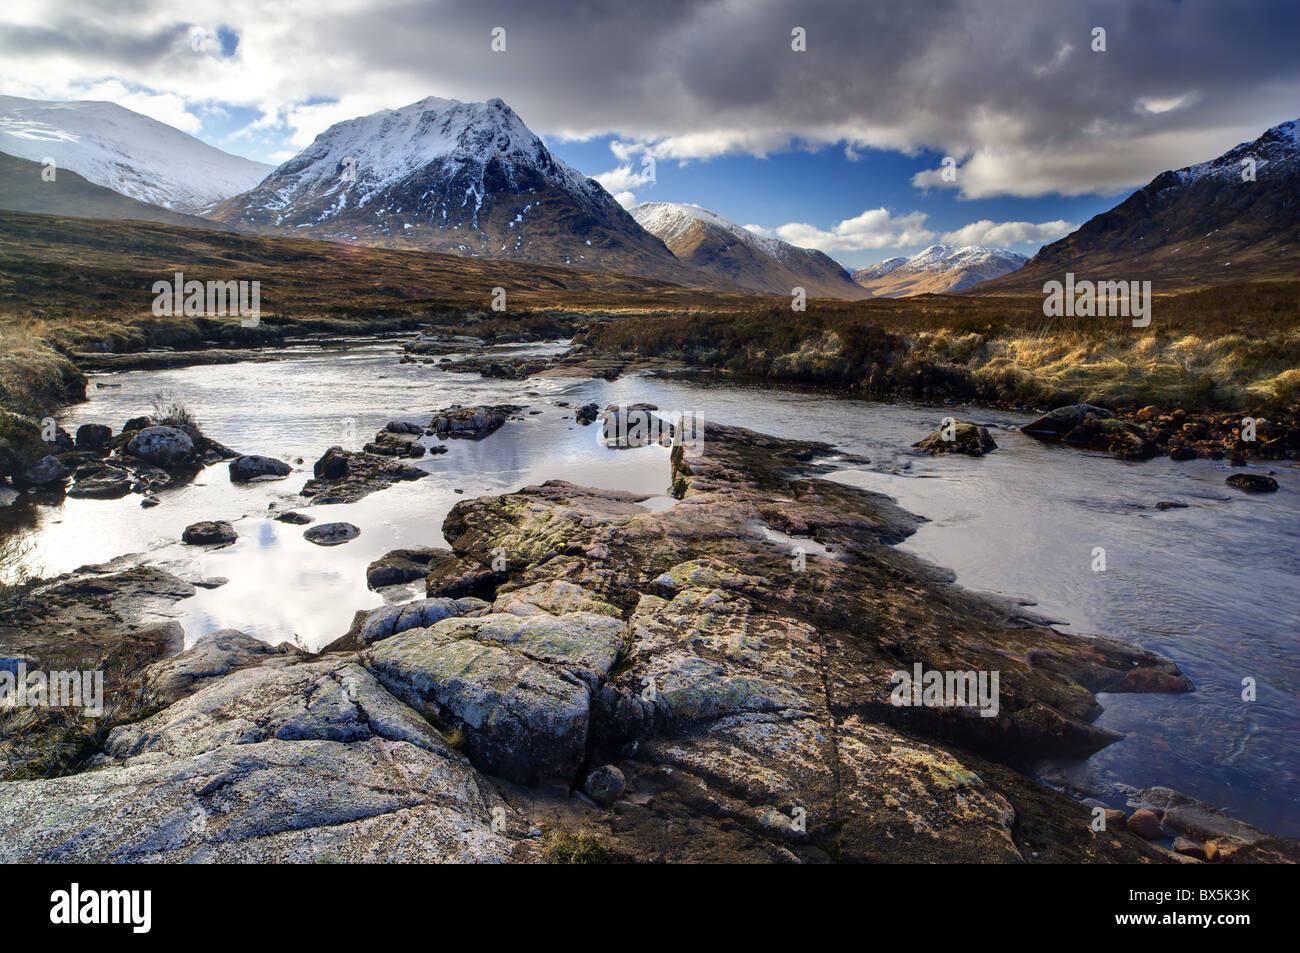 Winter view over River Etive towards snow-capped mountains, Rannoch Moor, near Fort William, Highland, Scotland, Stock Photo